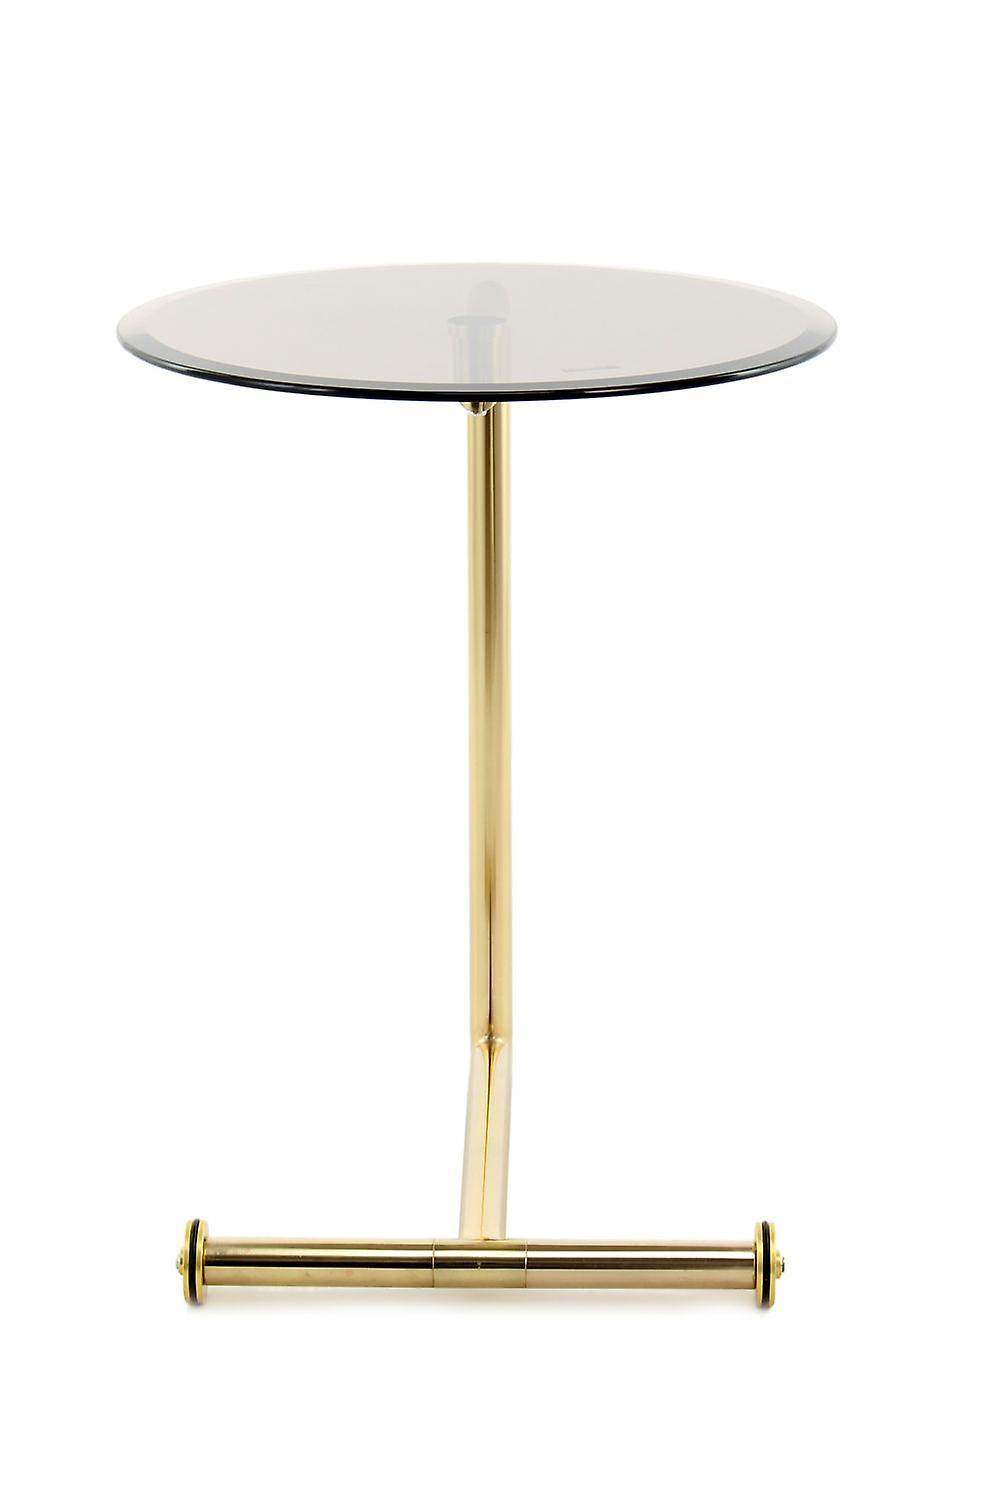 Basse Or Ronde Conception Top Sur Table Verre Roulettes nPXNO80wk